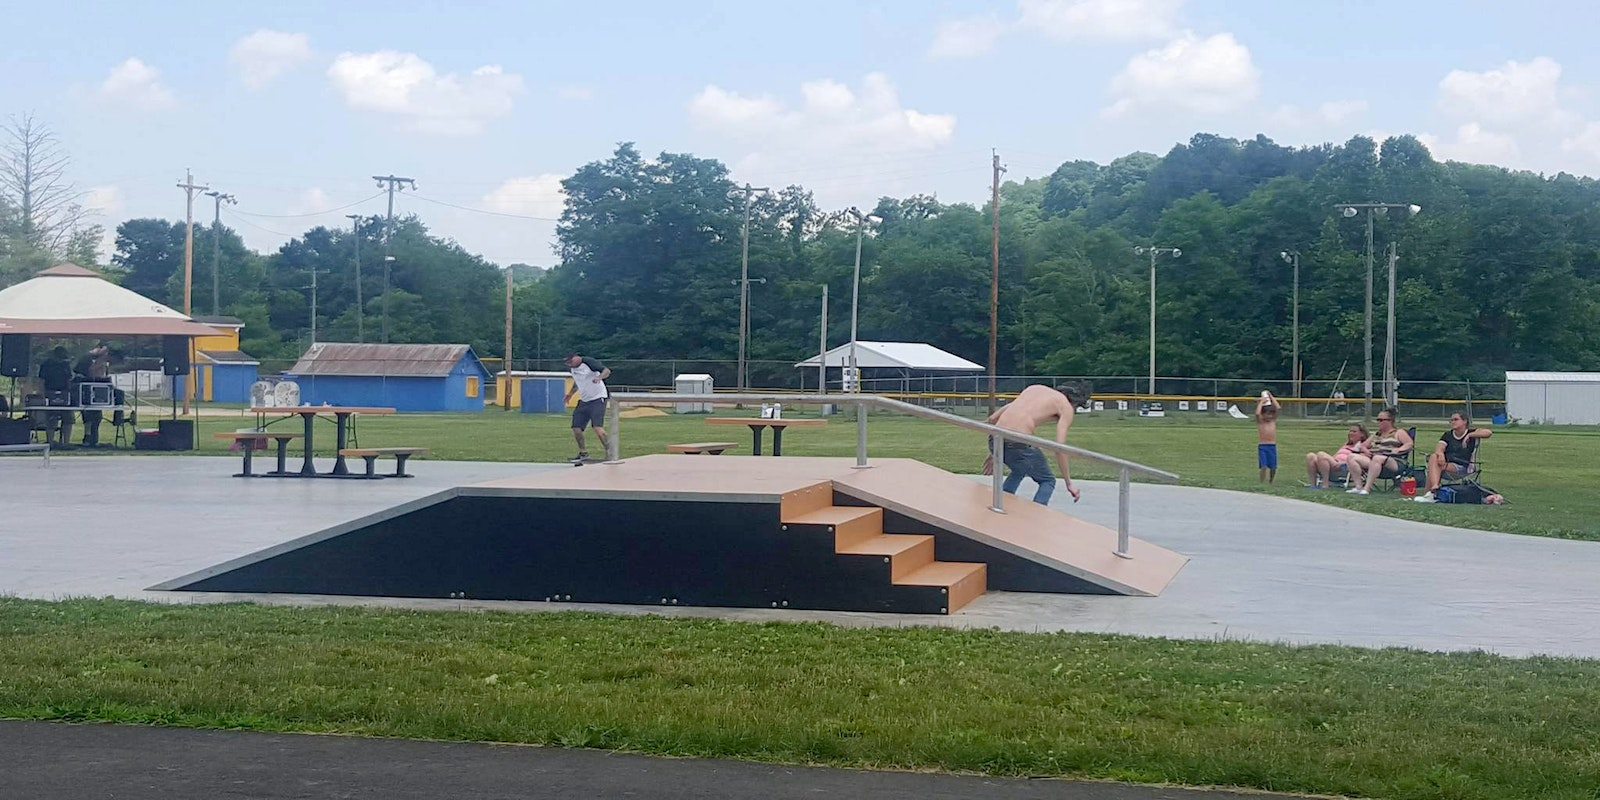 Congratulations to the winners of the Skating Competition on June 24